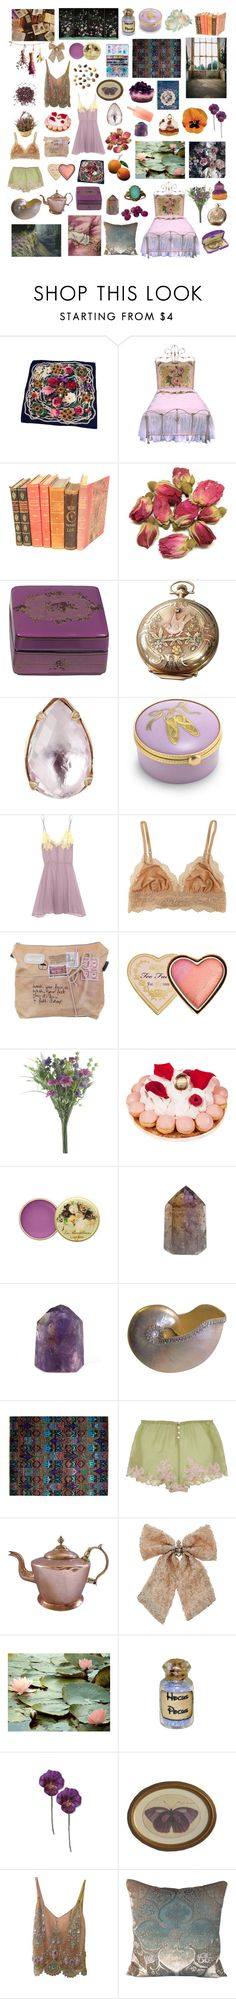 """""""Untitled #2196"""" by zoella ❤ liked on Polyvore featuring Chanel, Grayce, Ladurée, Etro, Elgin, Larkspur & Hawk, Tiffany & Co., Rosamosario, Cosabella and Too Faced Cosmetics"""